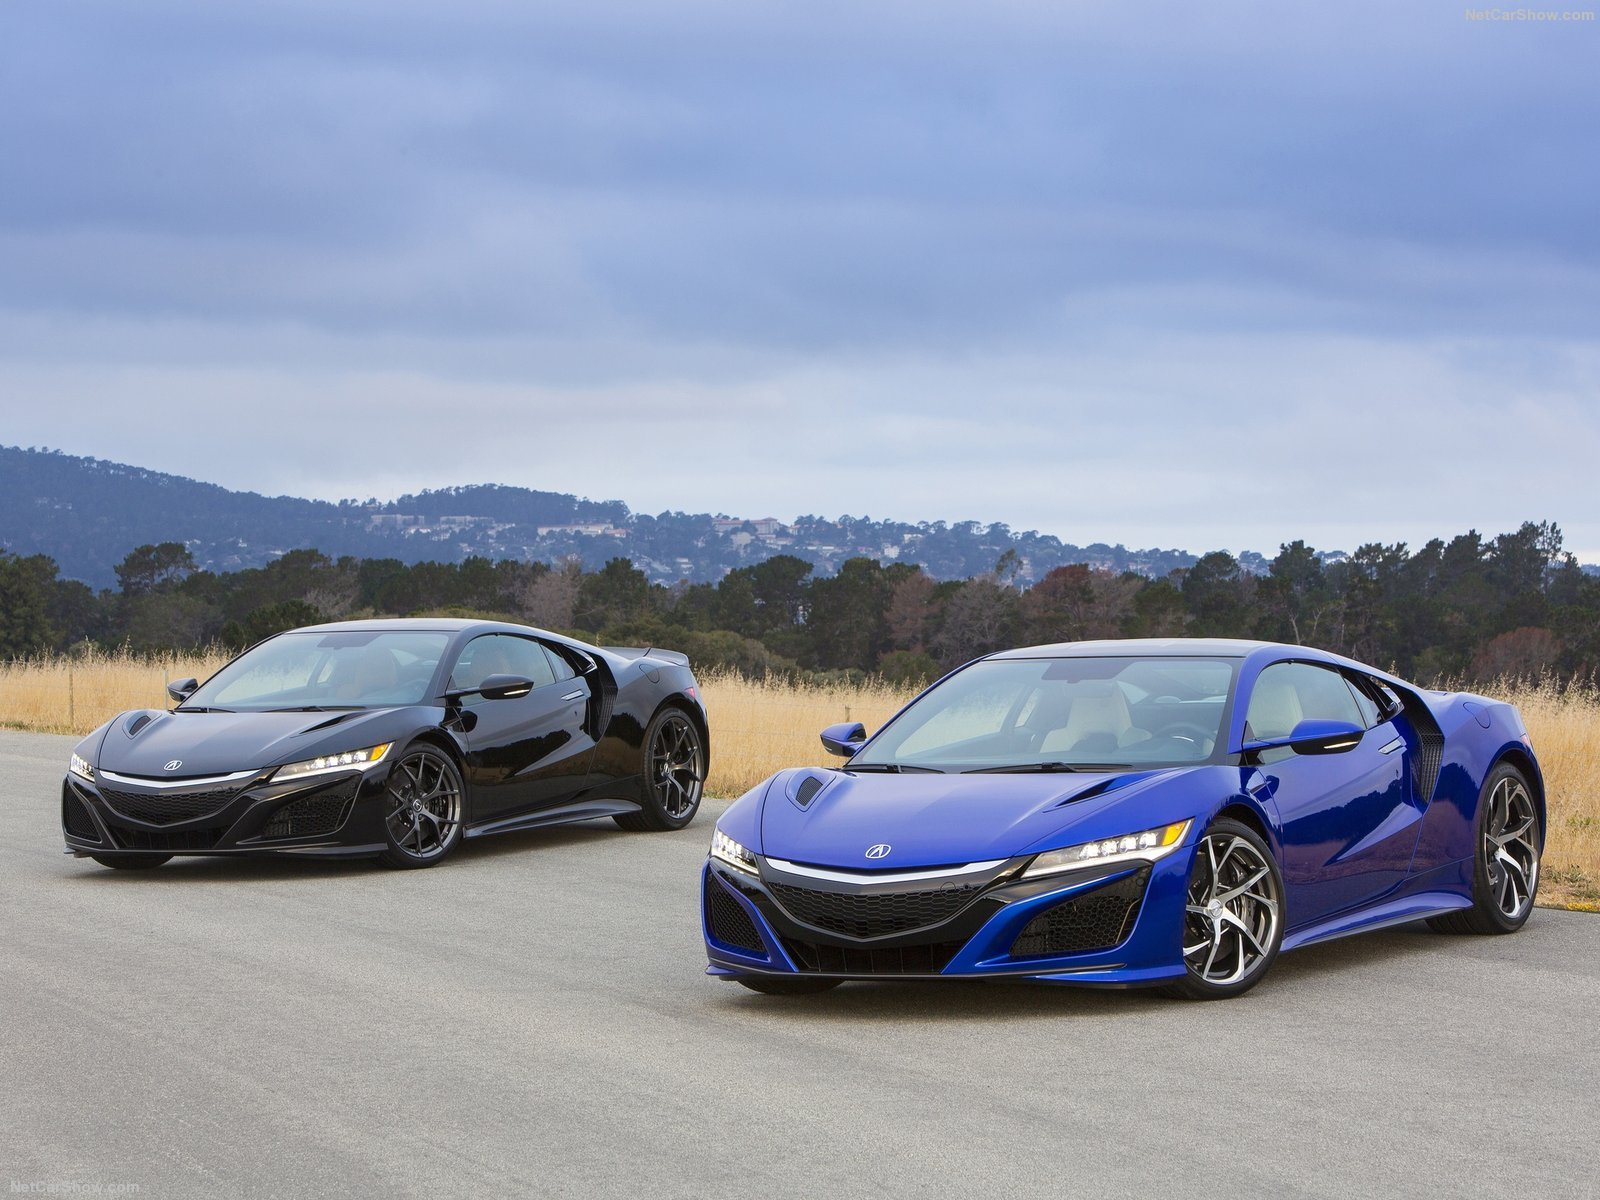 2016 acura cars Coupe nsx supercars wallpaper  1600x1200  777769